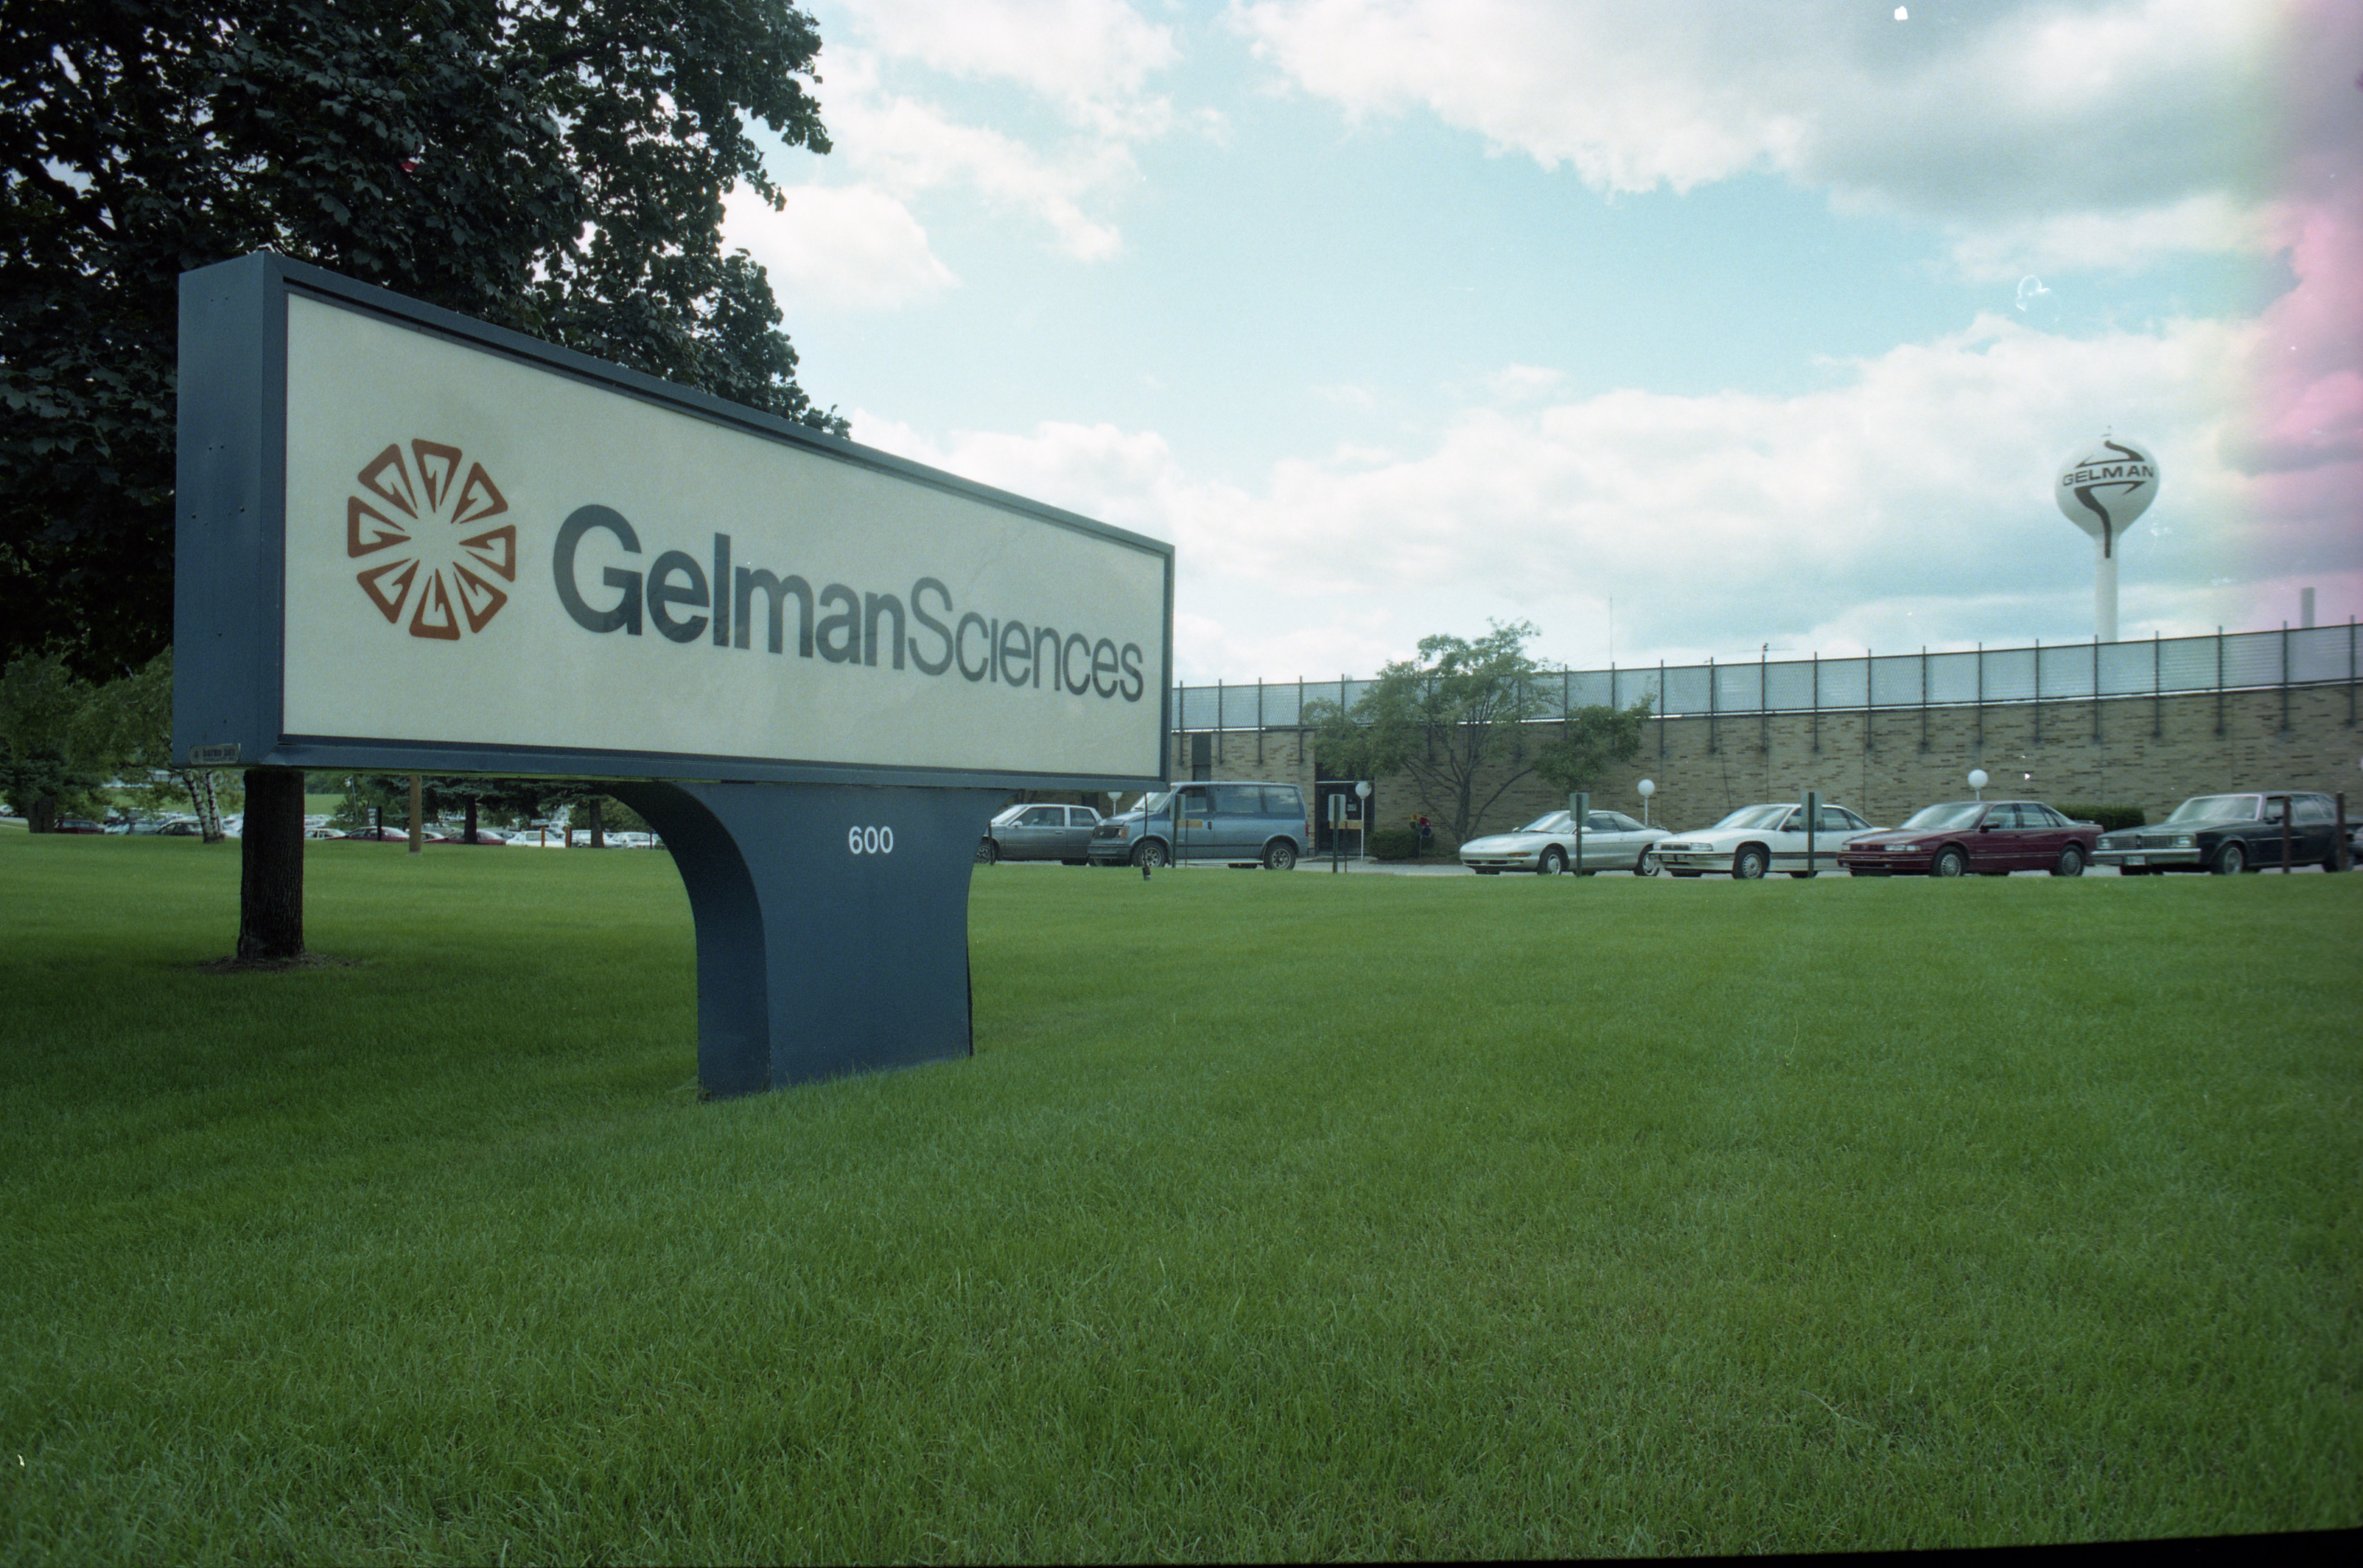 Exterior Of Gelman Sciences Building, 600 S Wagner Rd, August 1994 image